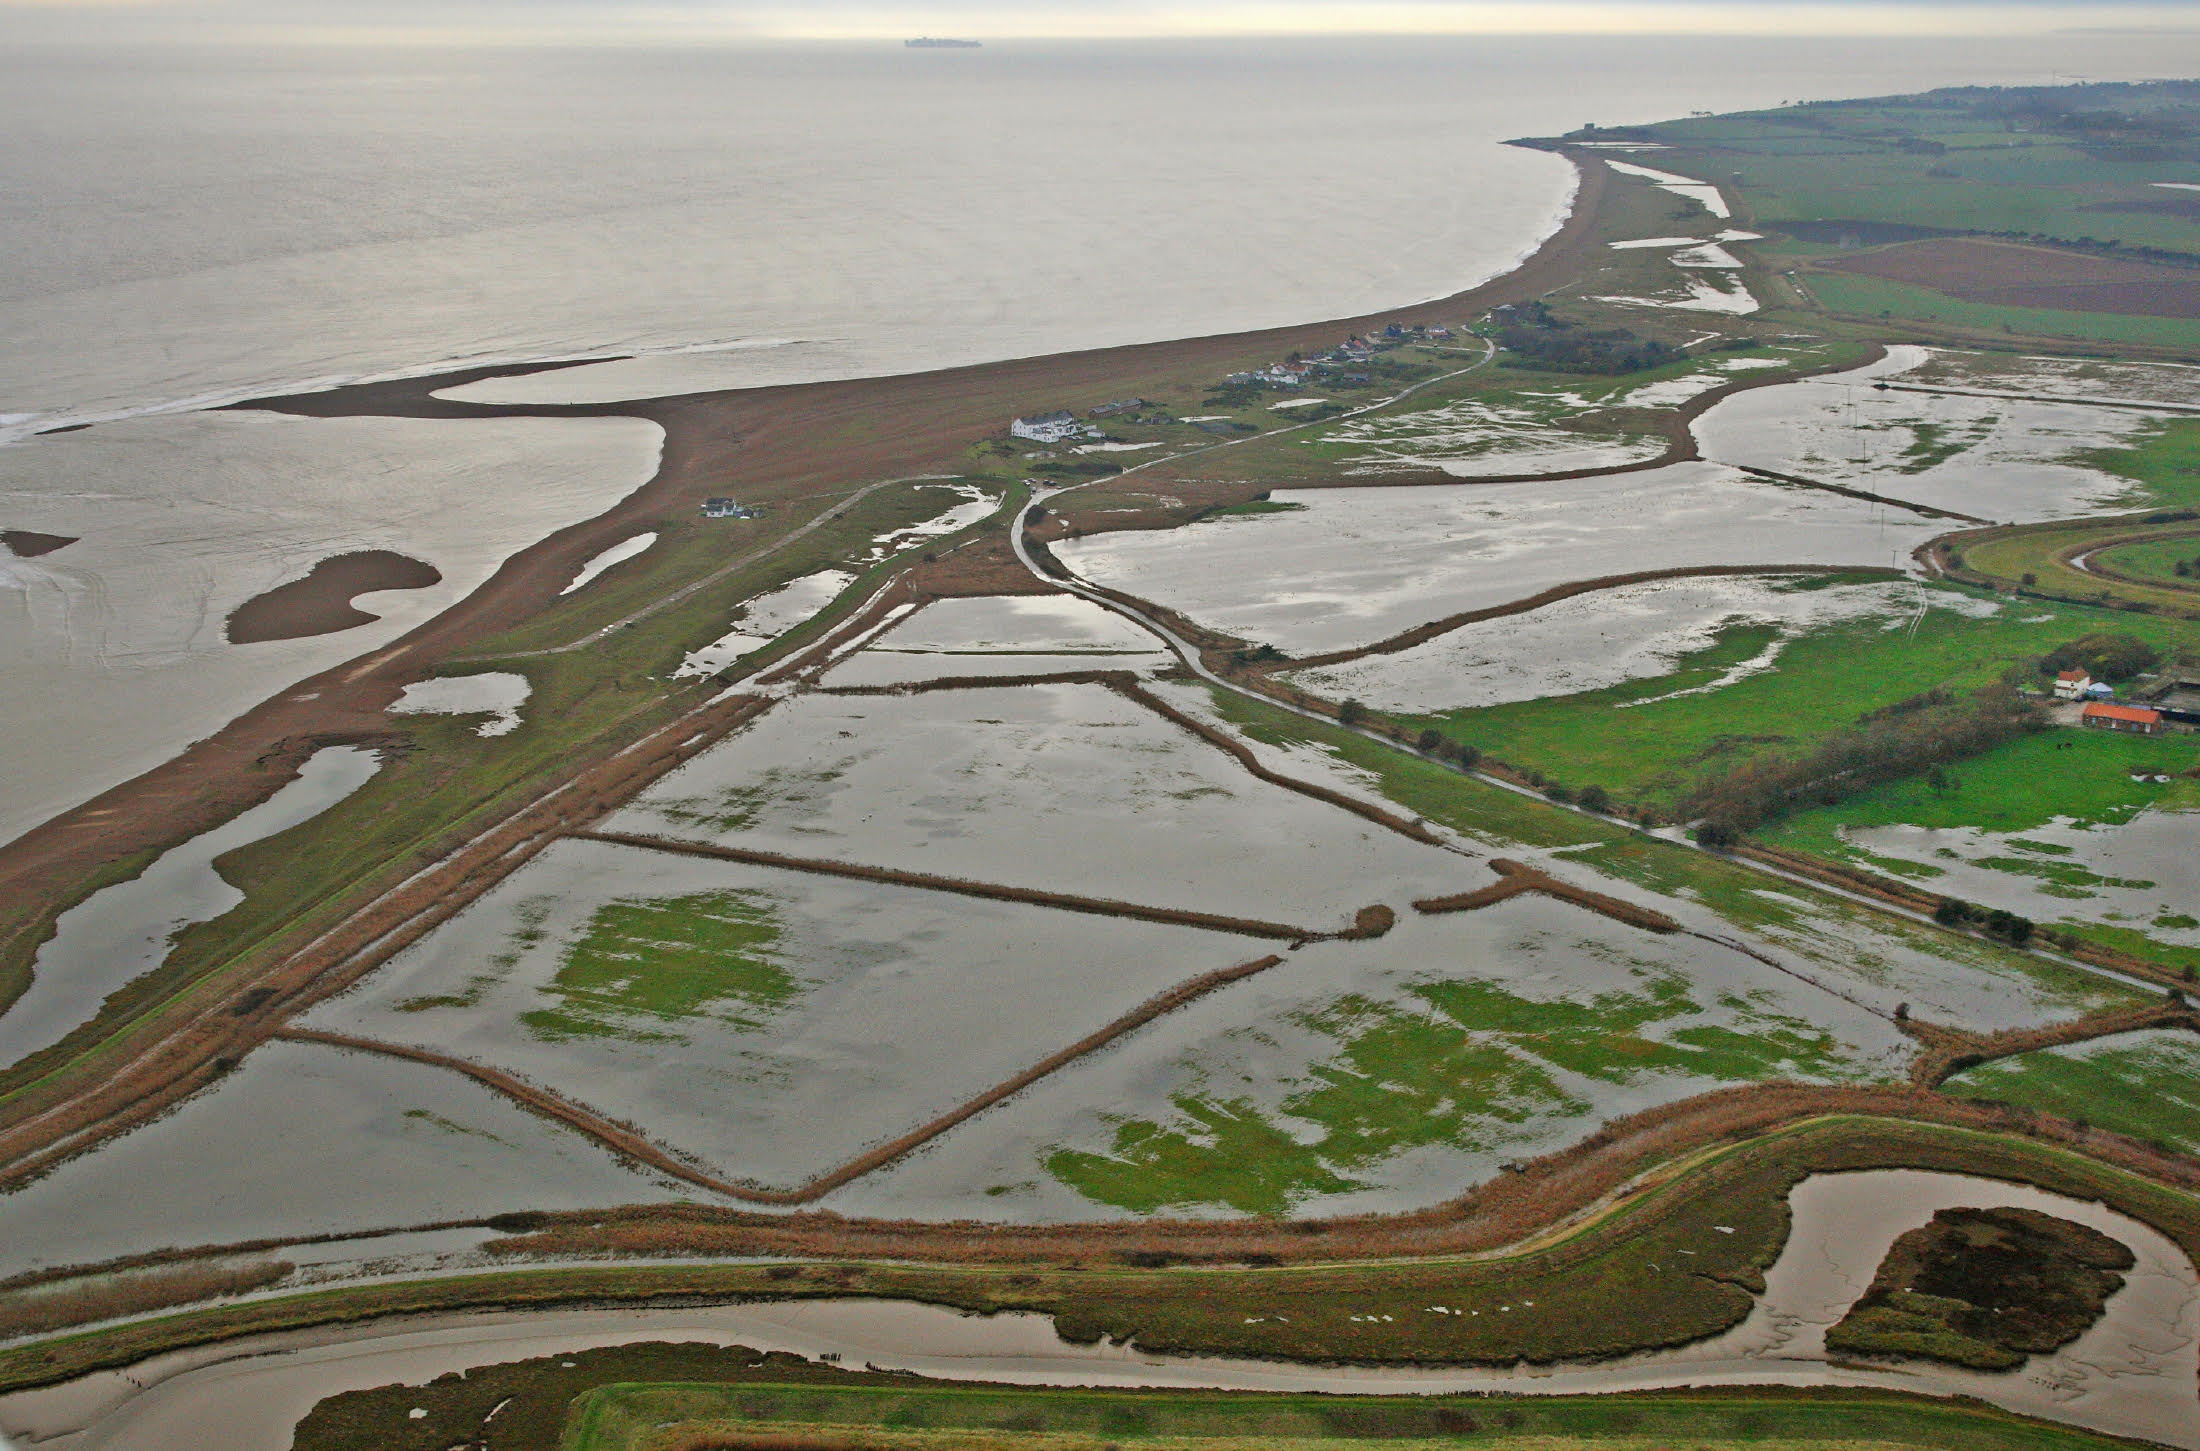 The aftermath of the tidal surge at Shingle Street, December 2013  Photo credit: Mike Page